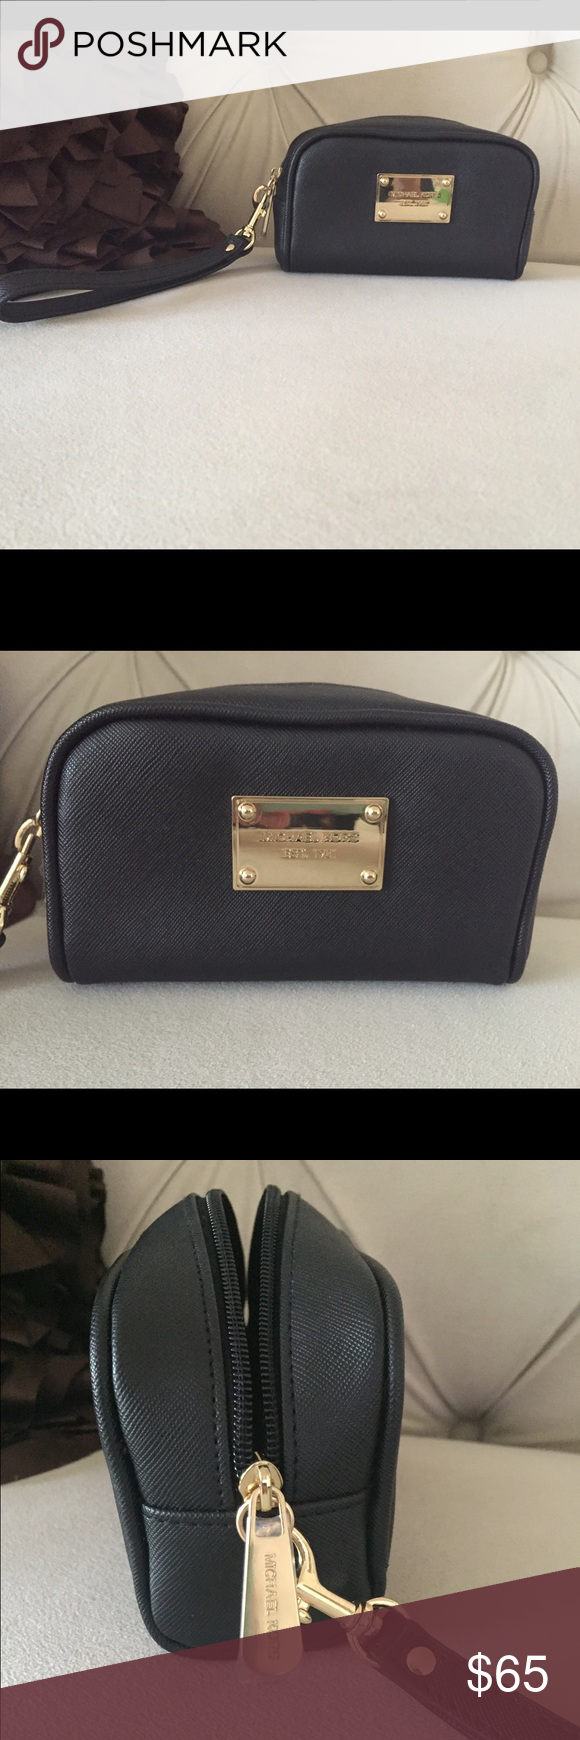 Michael Kors Makeup Bag Michael Kors Black makeup bag, can also be used as a wristlet. Black leather with gold logo & zipper. Plastic coverings still on the zipper. This was a gift, never used. Brand new. Michael Kors Bags Cosmetic Bags & Cases